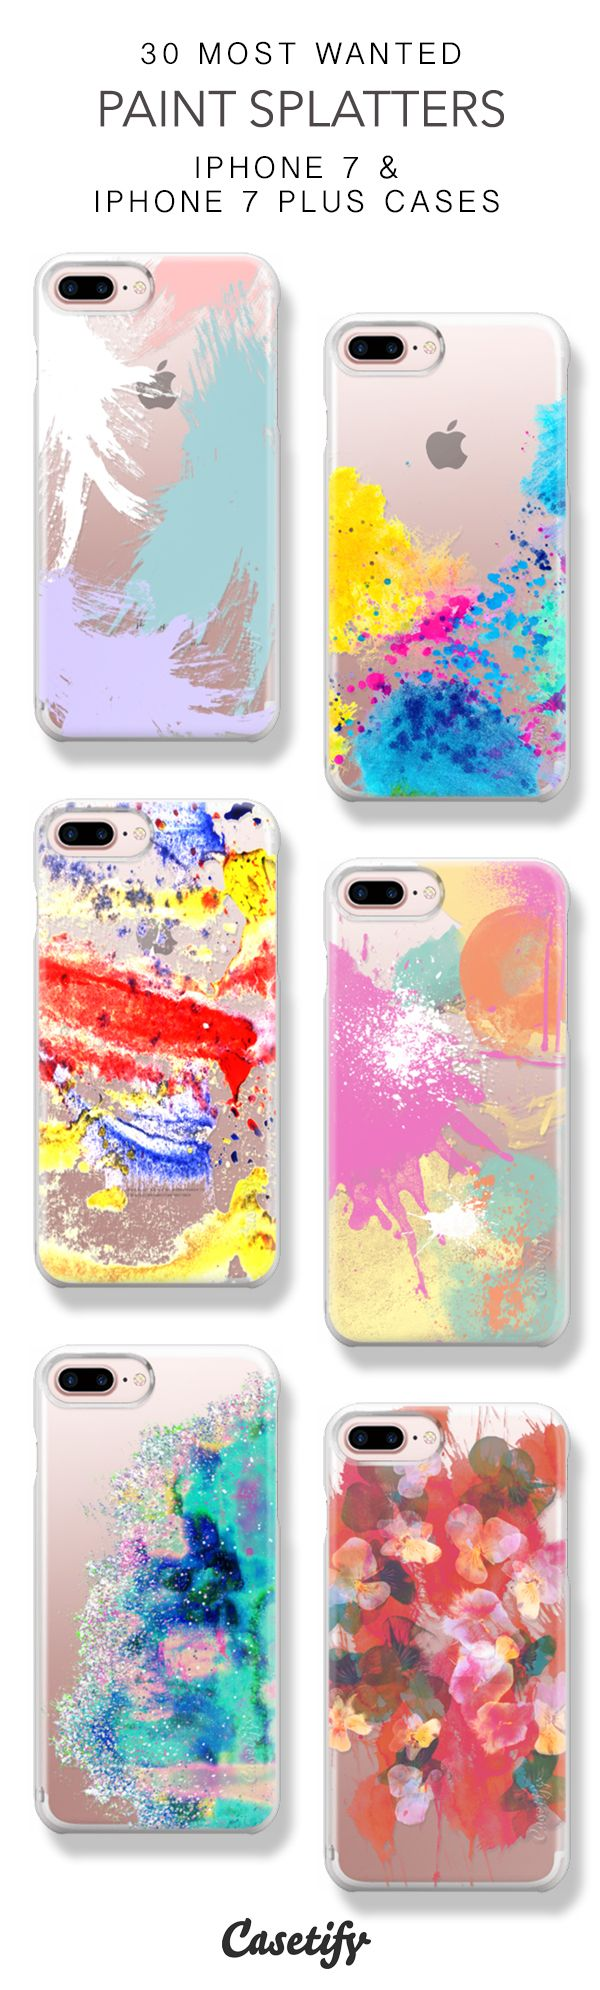 30 Most Wanted Paint Splatters Protective iPhone 7 Cases and iPhone 7 Plus Cases. More Colorful iPhone case here > https://www.casetify.com/collections/top_100_designs#/?vc=2zDvPTYEhd